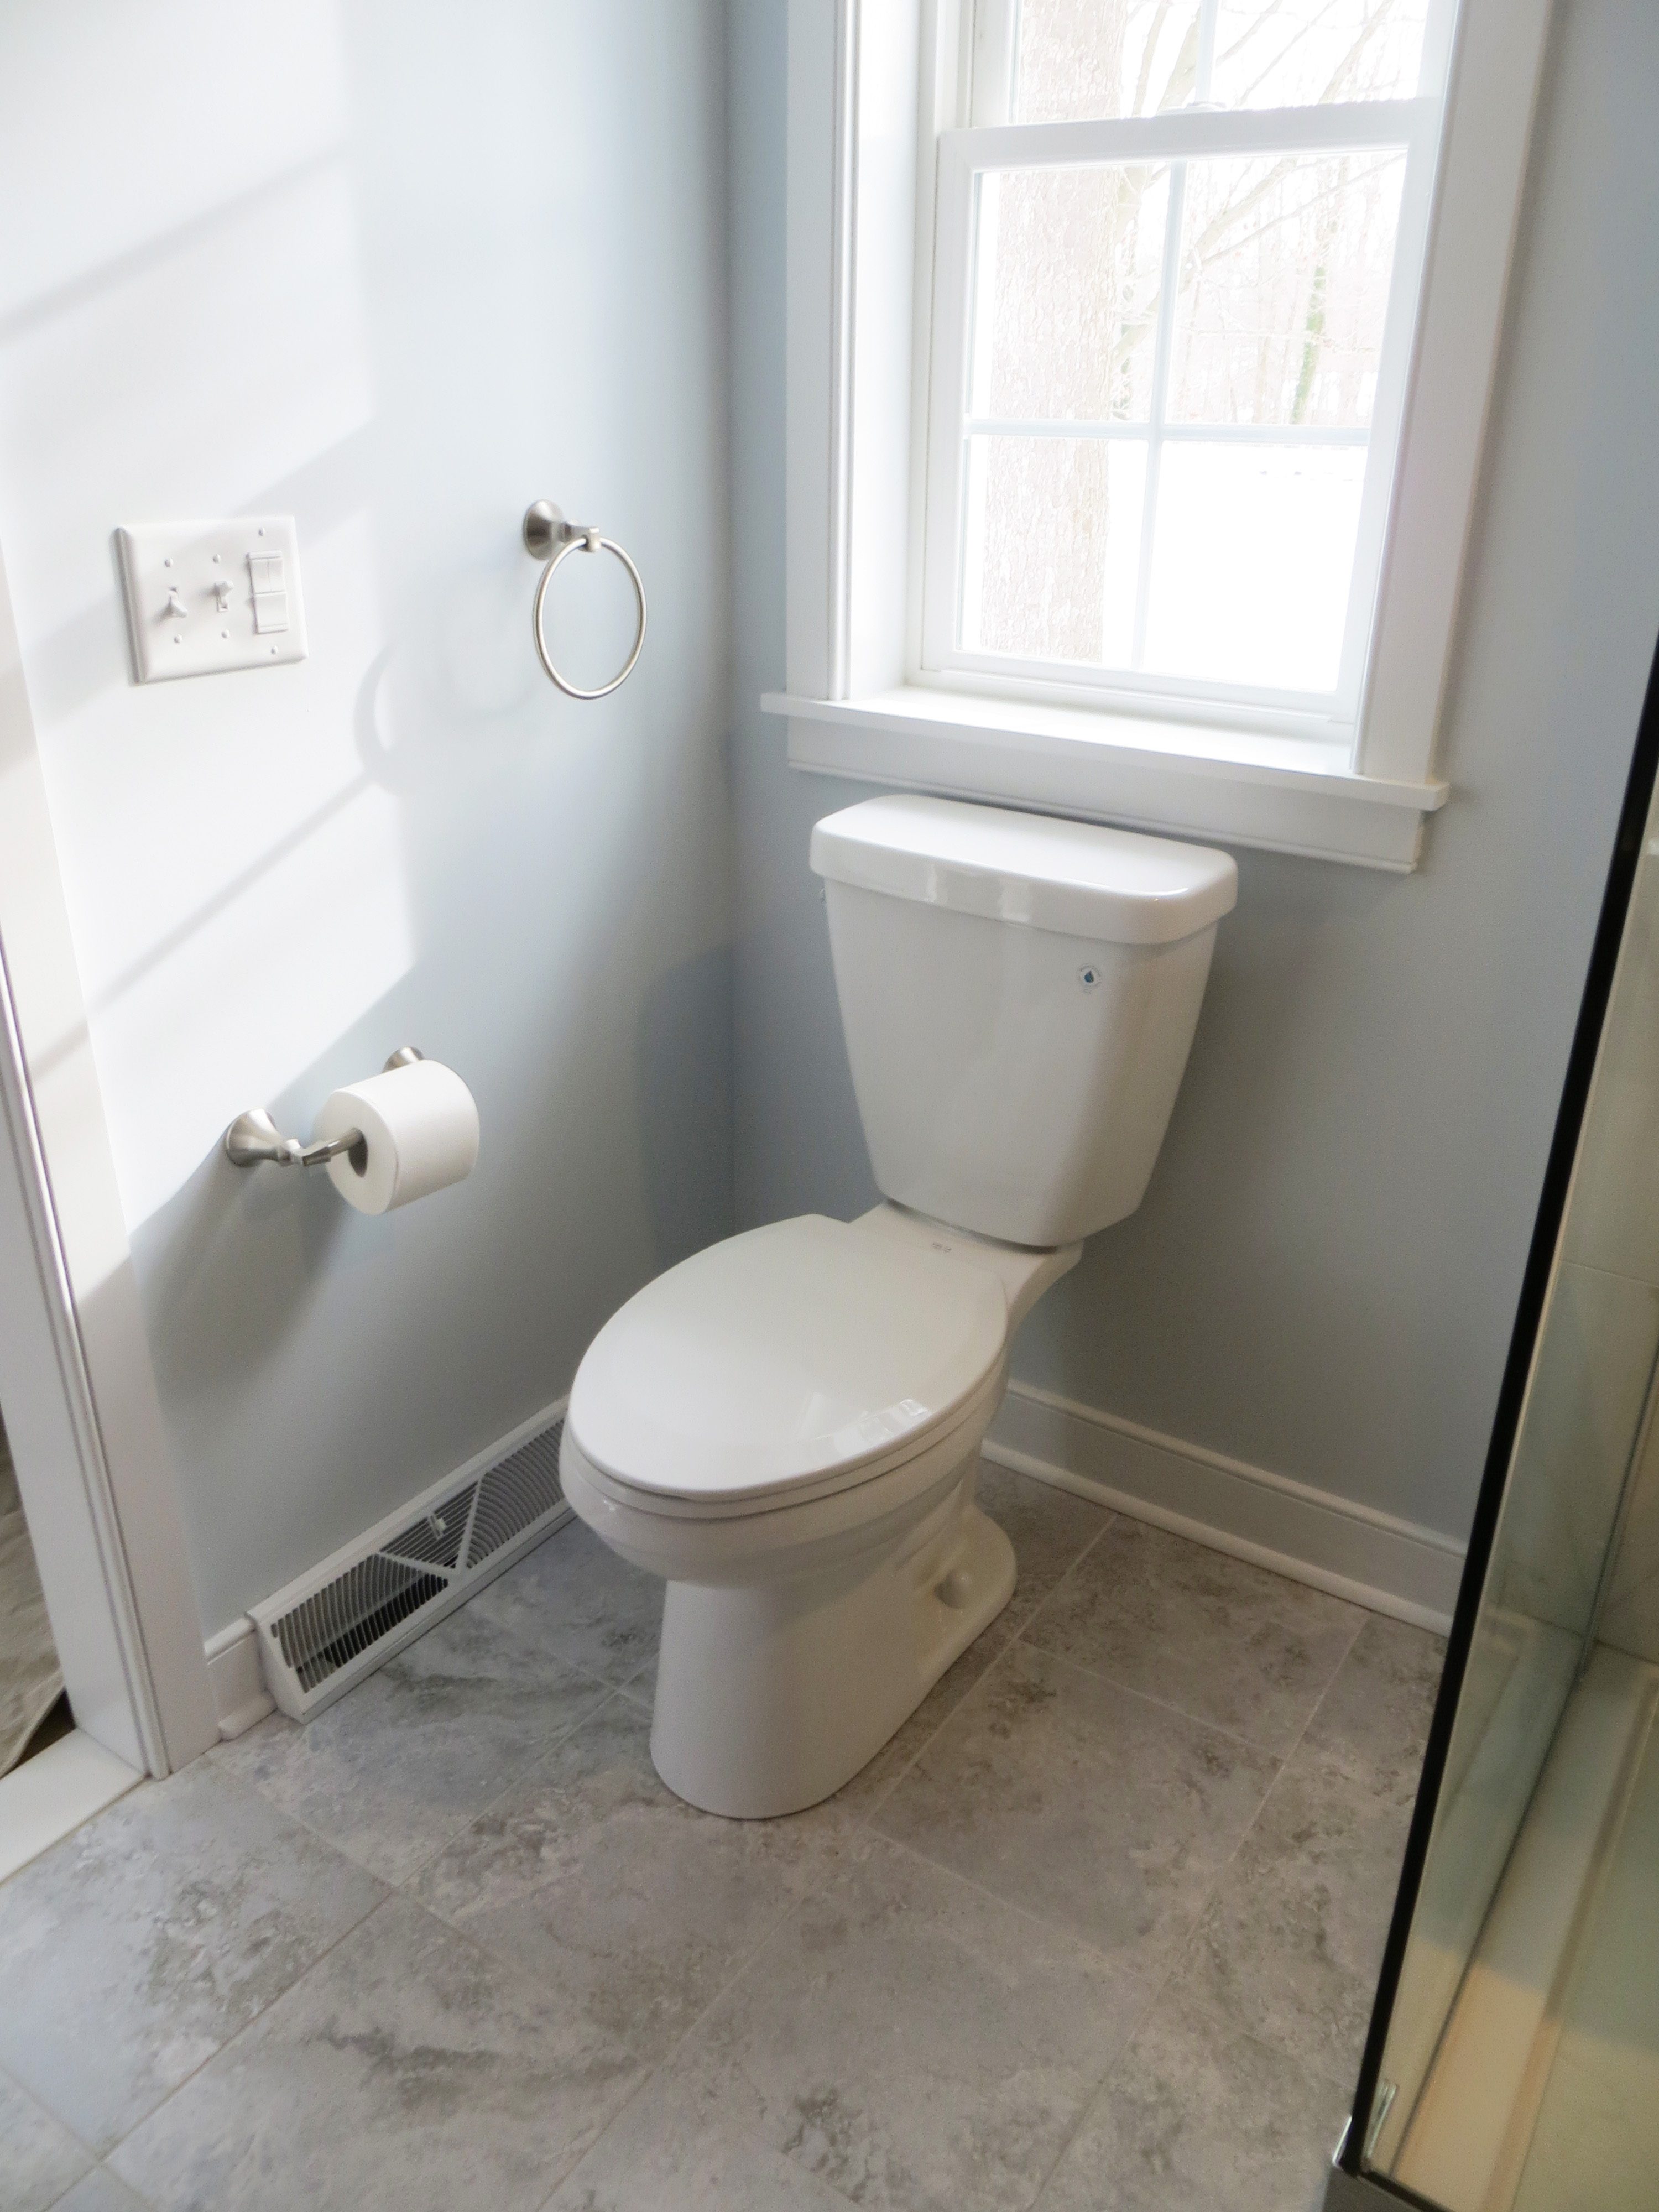 Bathroom Renovations & Remodeling Near East Aurora, NY